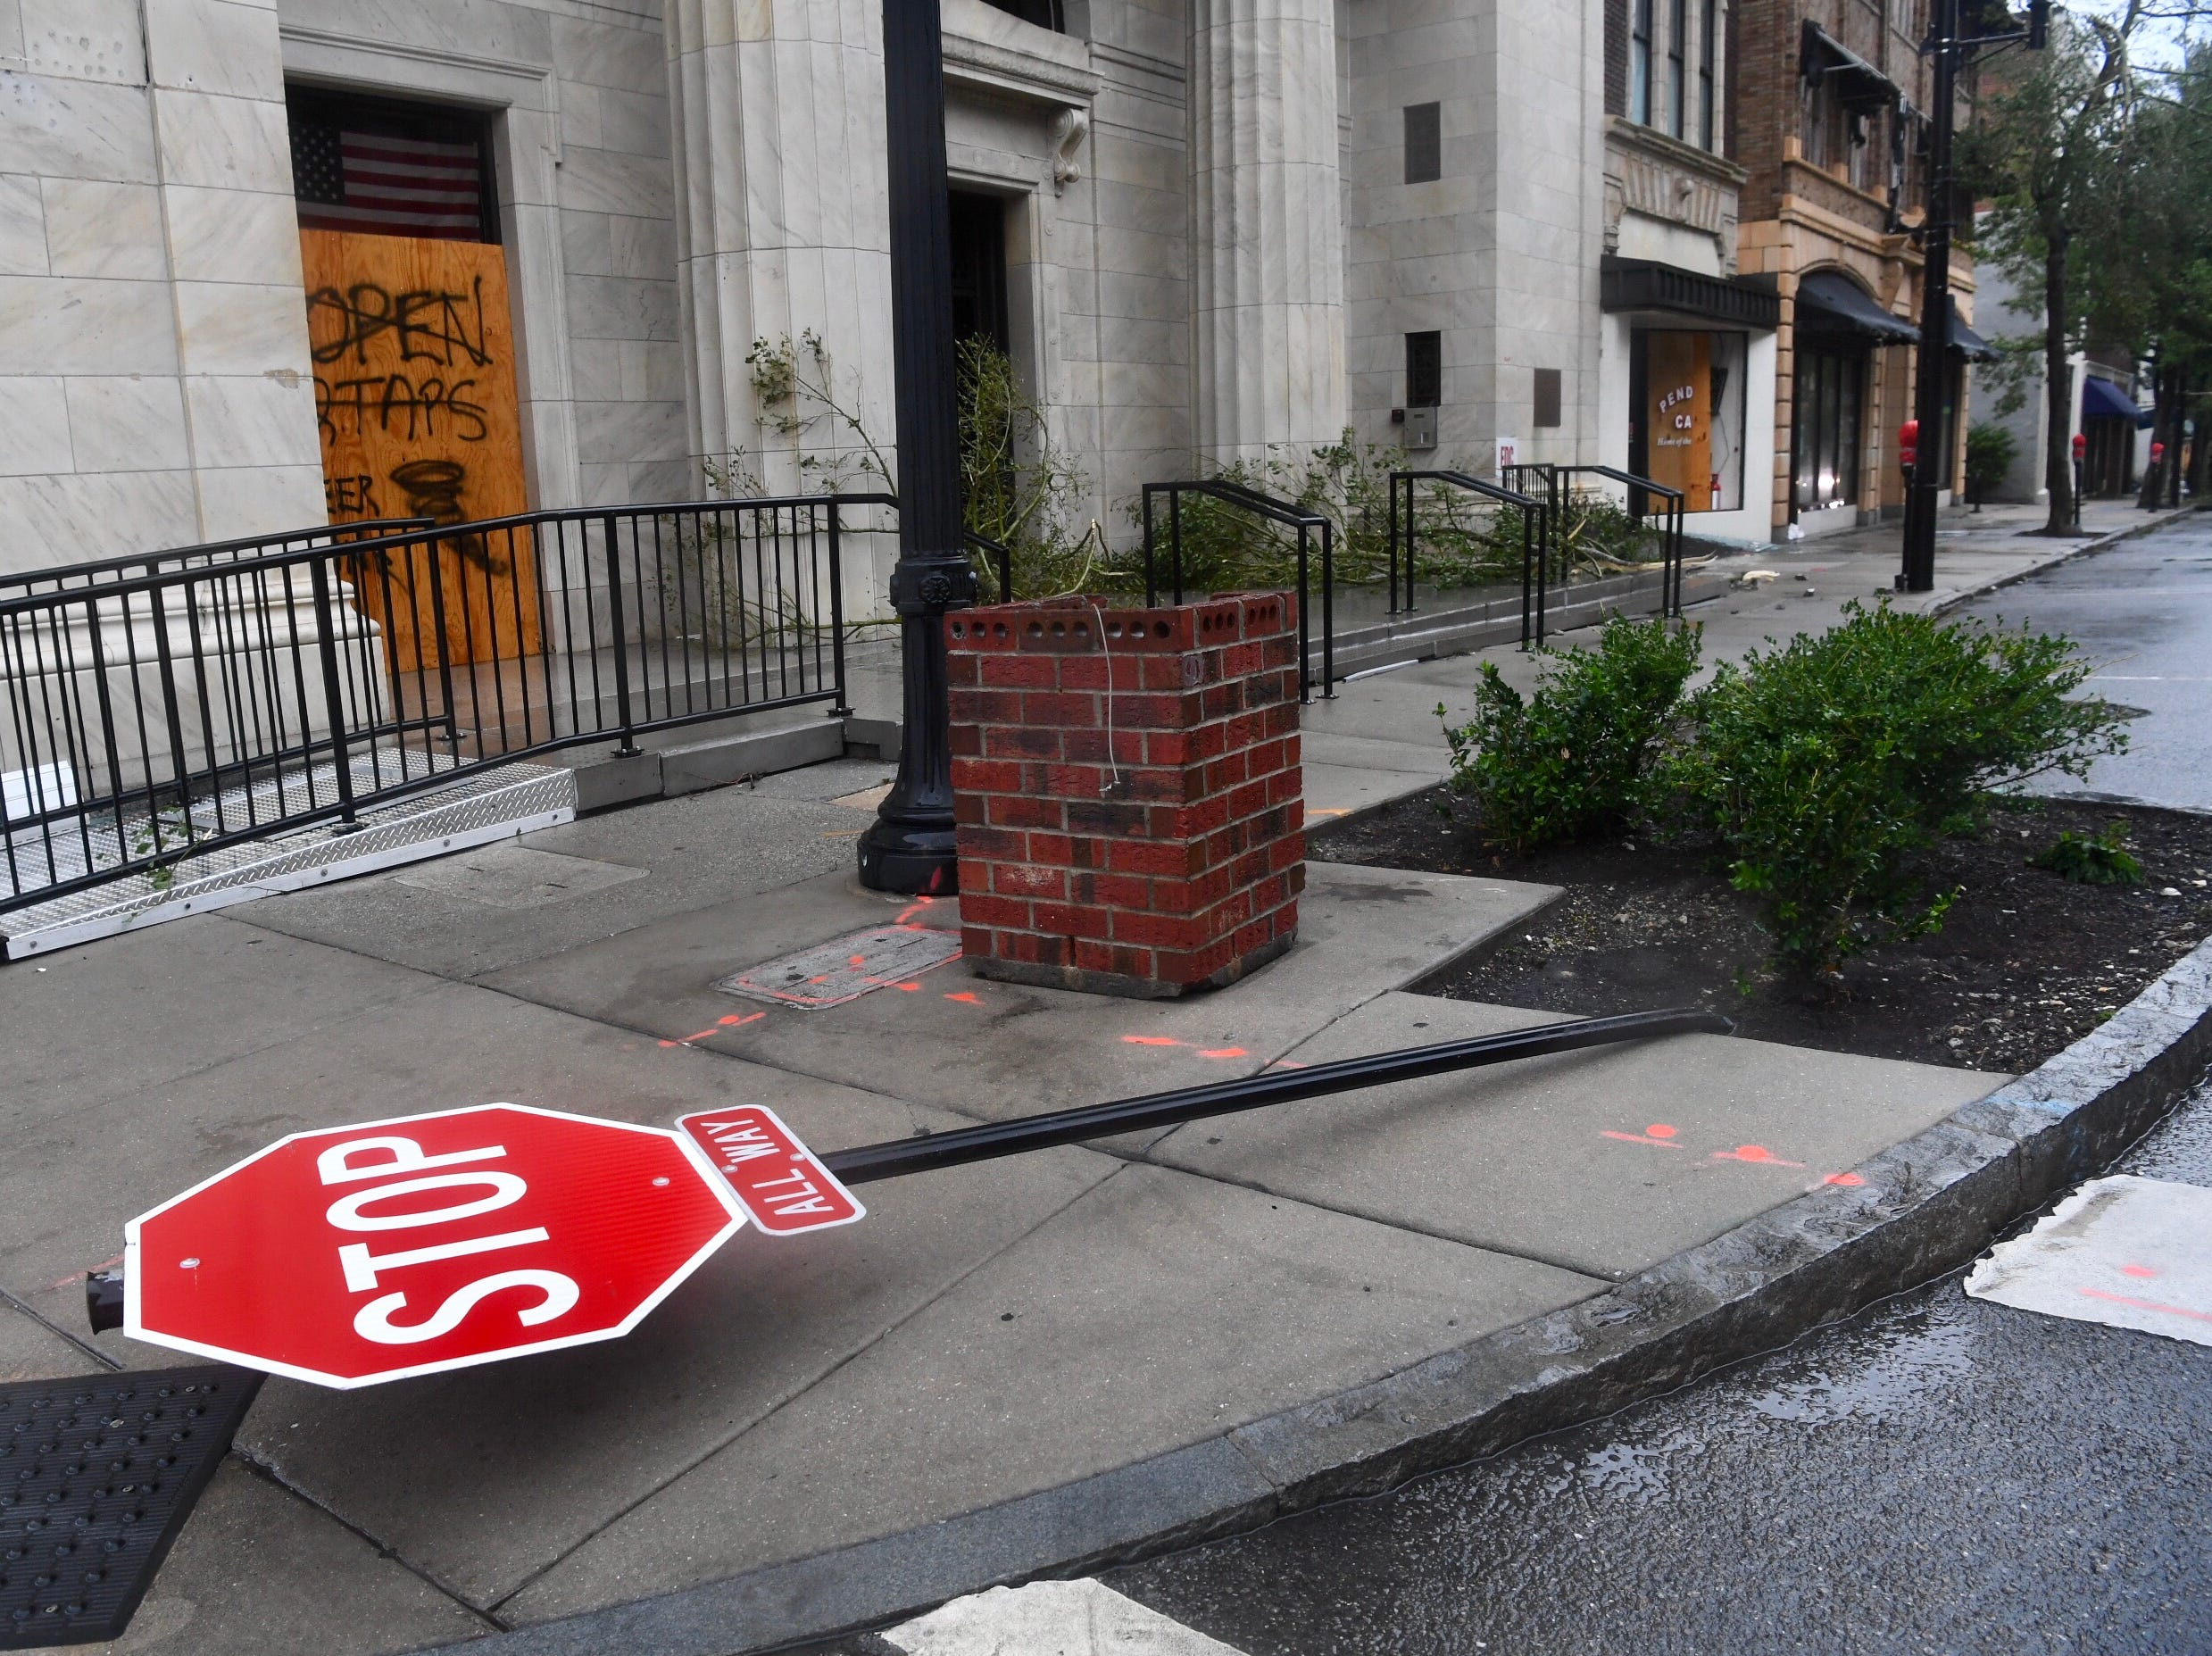 A damaged traffic sign in deserted downtown Wilmington, North Carolina, on Friday, Sept. 14, 2018, following Hurricane Florence's landfall.